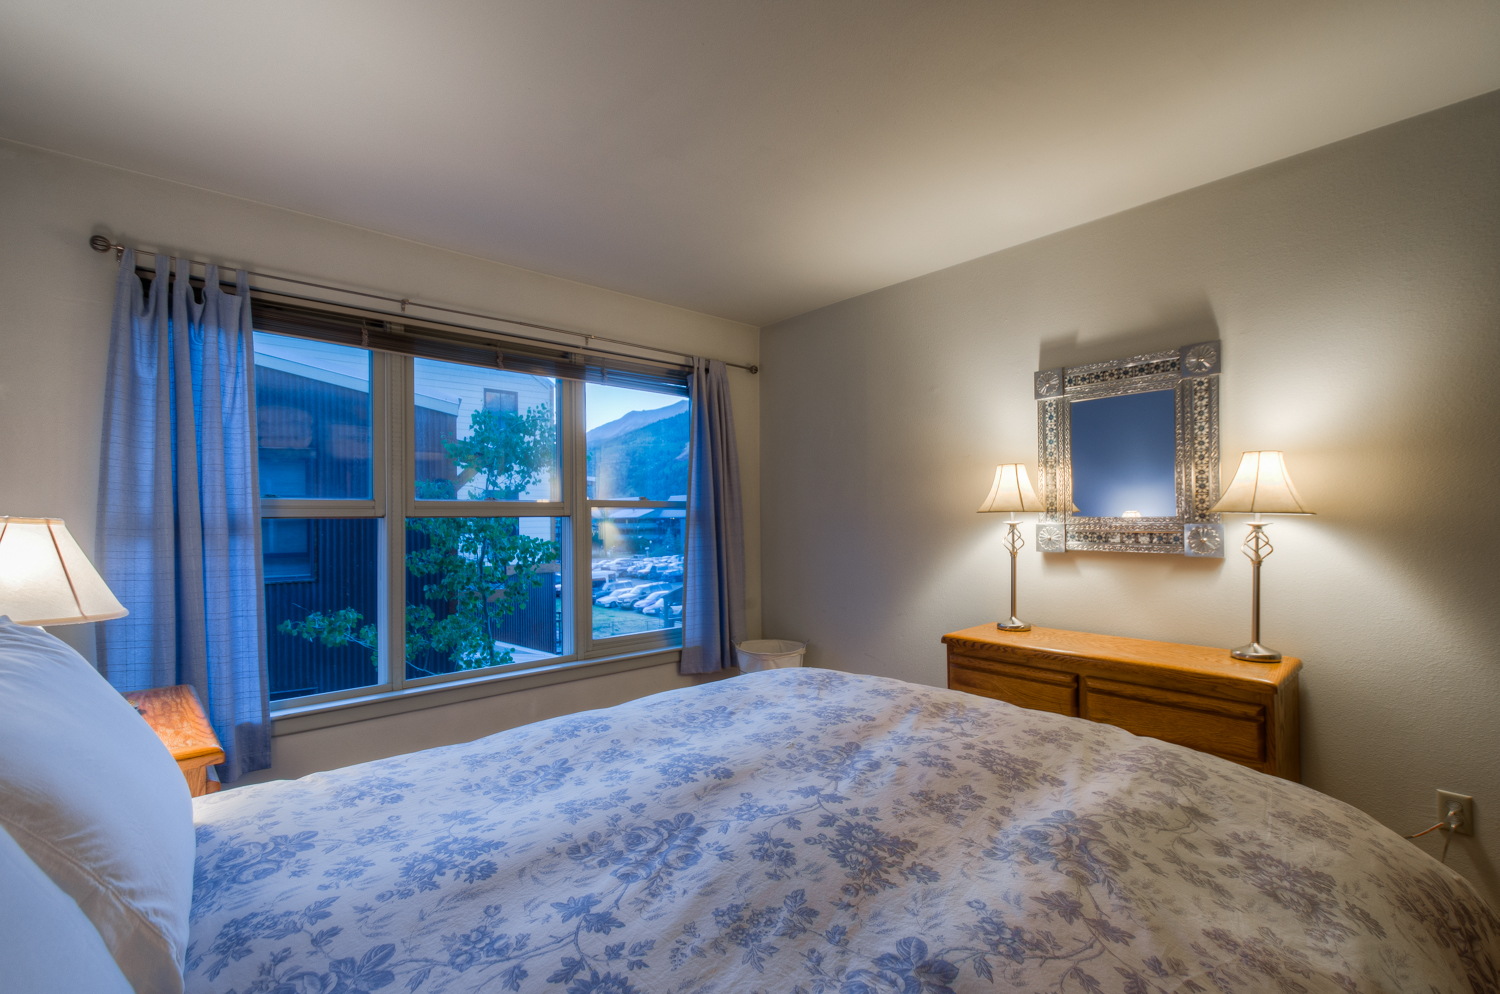 Large Bed, Drawer Dresser, Mirror, and Table Lamps